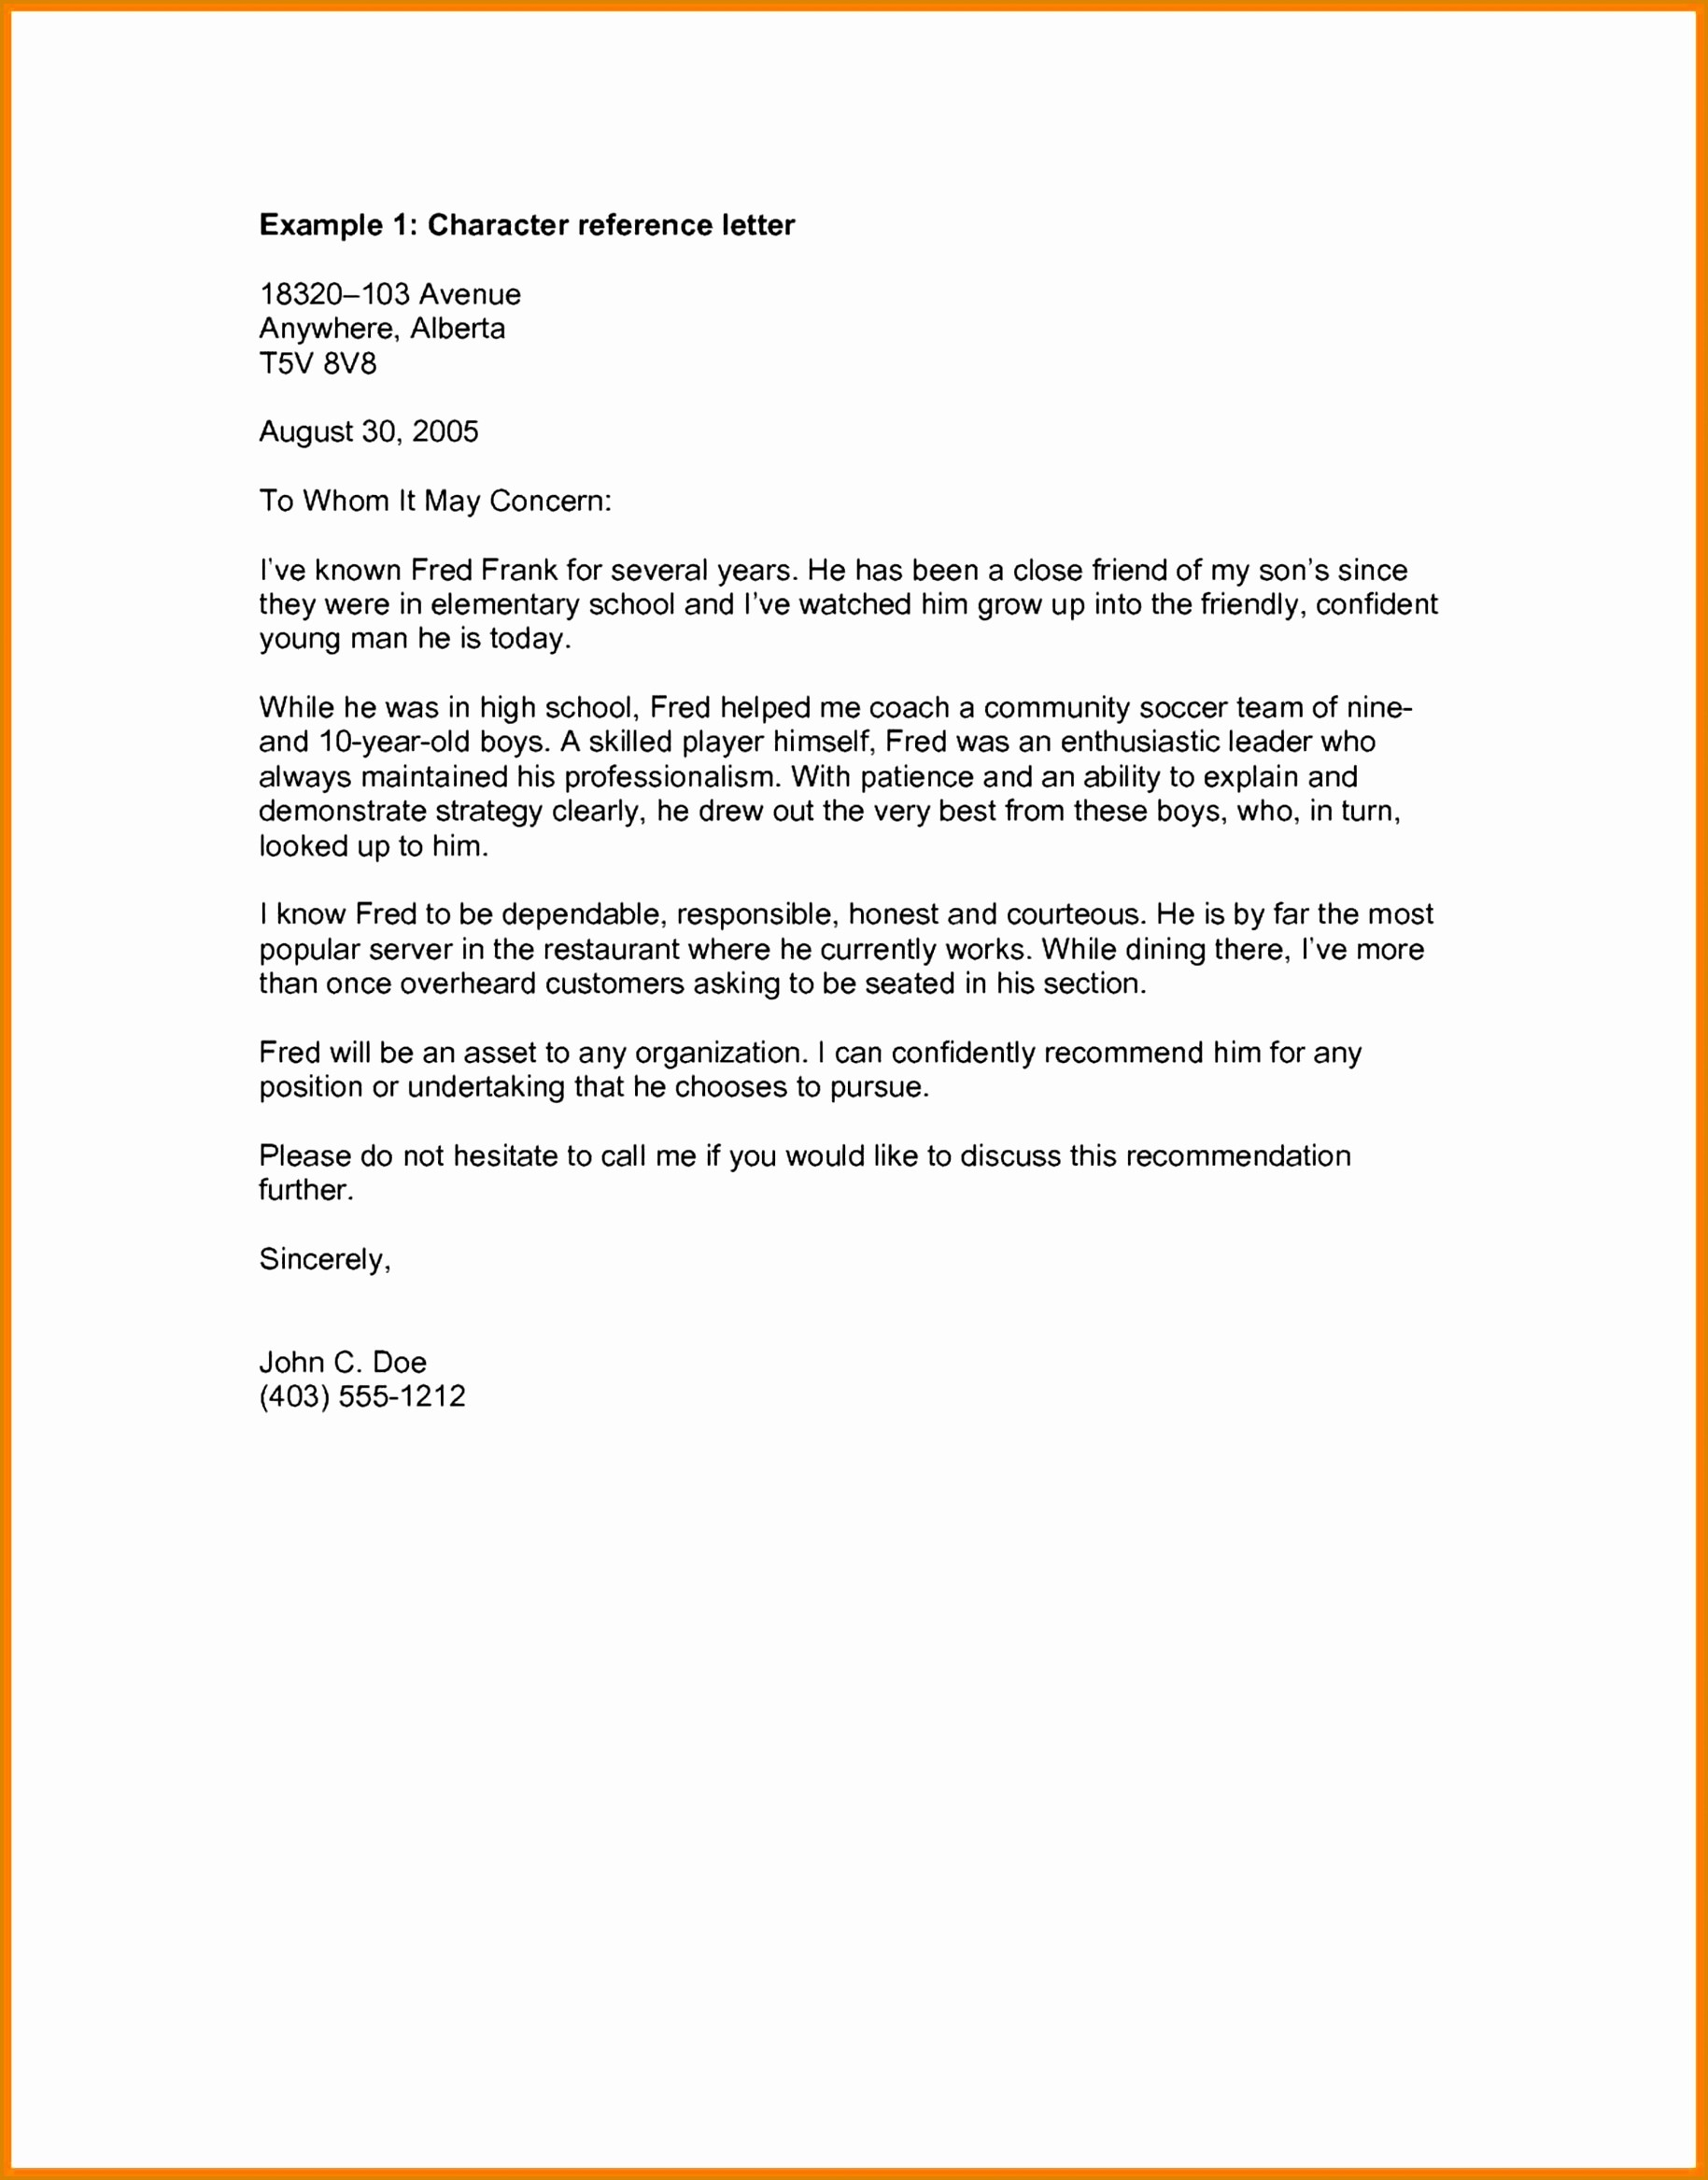 Due Diligence Engagement Letter Template - Engagement Letter Template Uk Best Undertaking Letter format